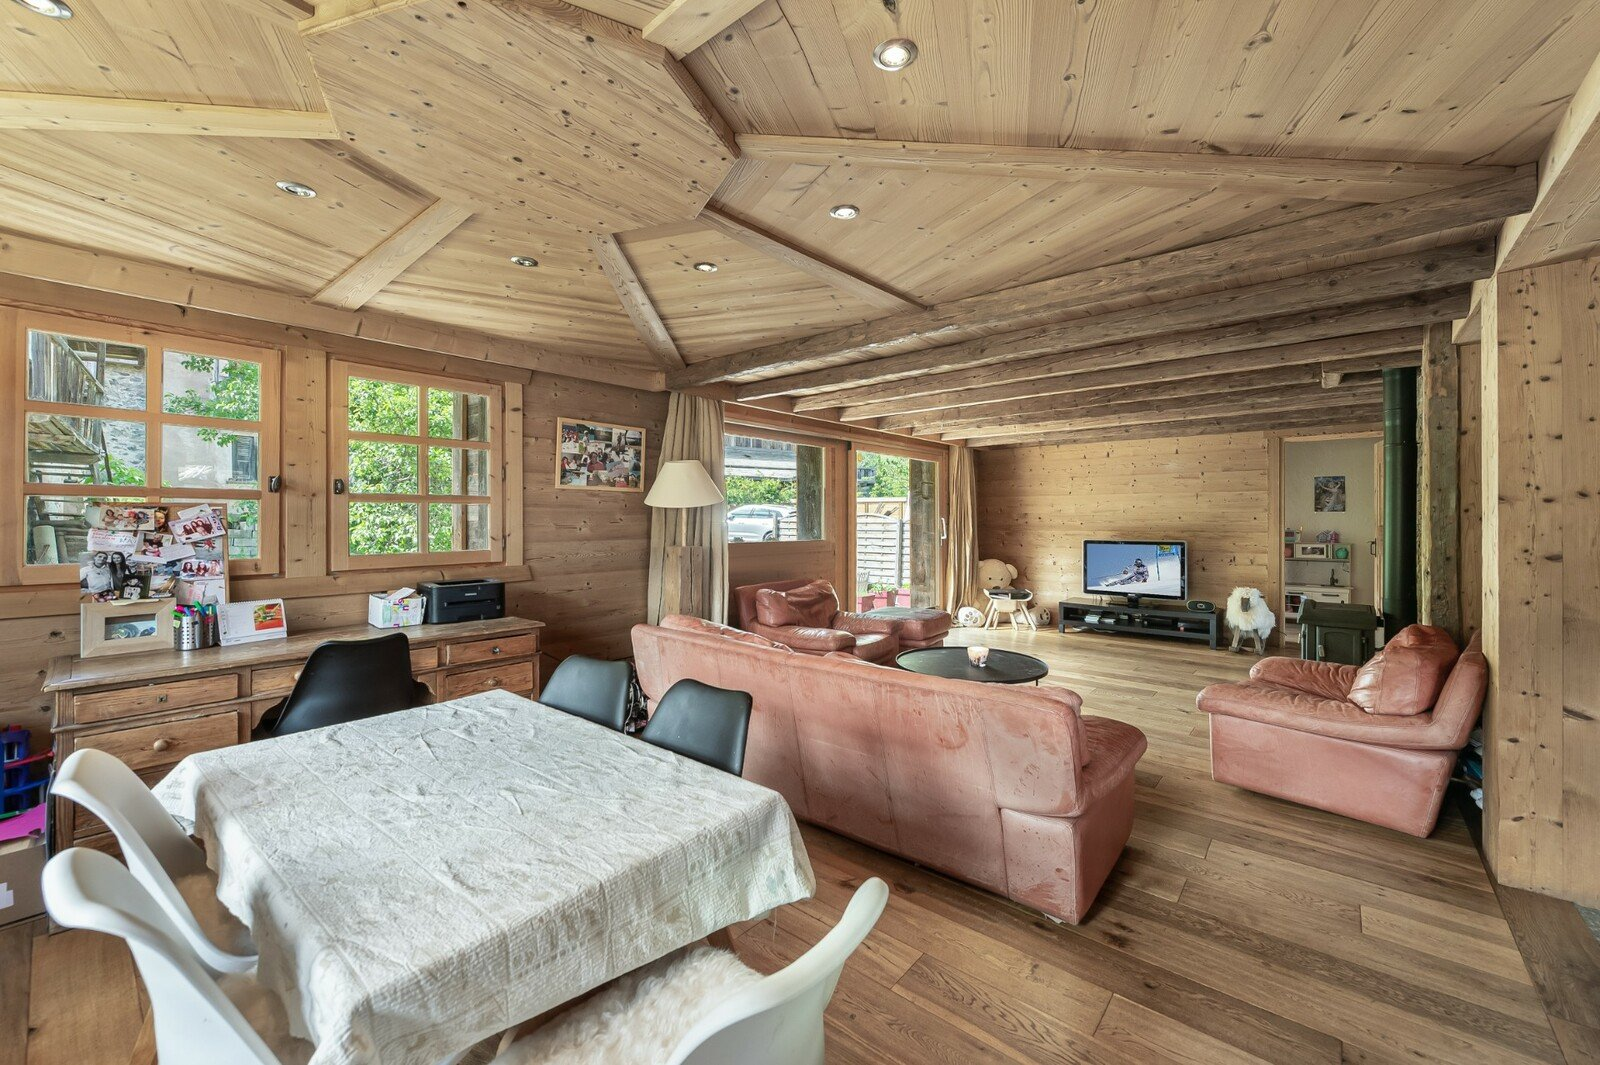 CHARMING CHALET WITH HAND PICKED MATERIAL CLOSE TO LIFT AND RESTAURANTS